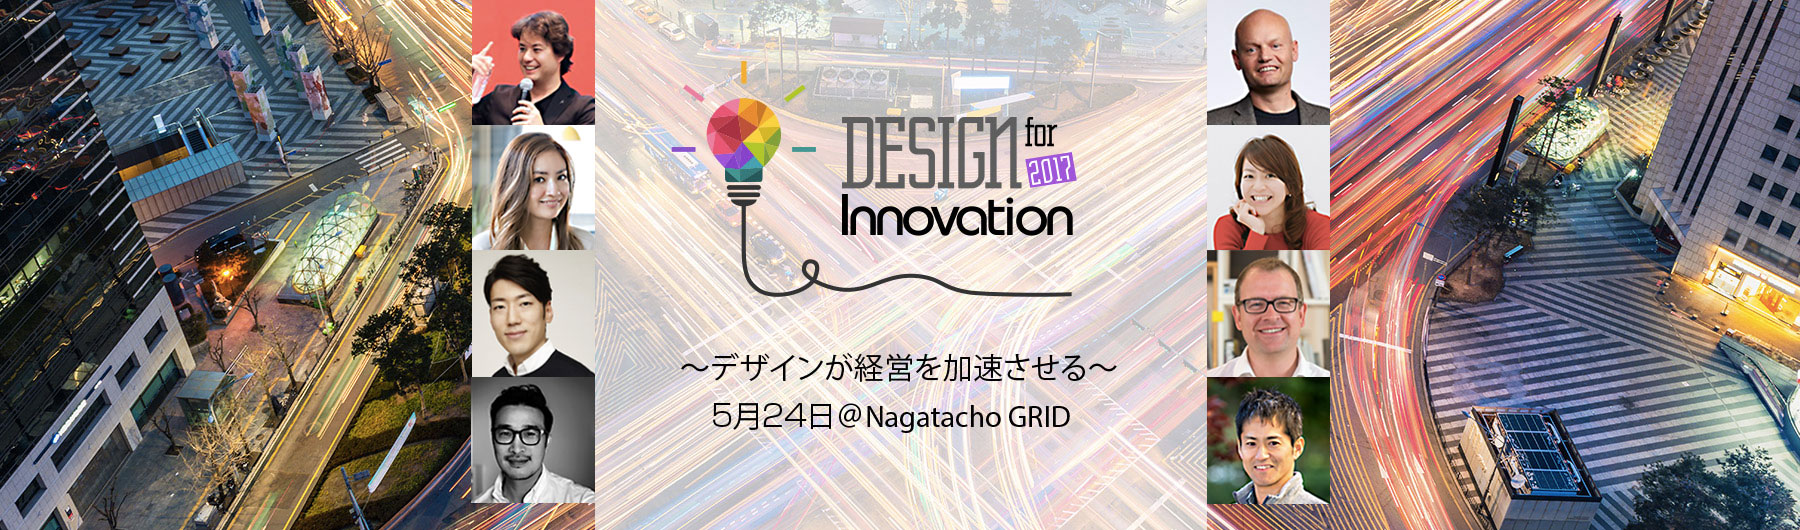 DESIGN for Innovation 2017